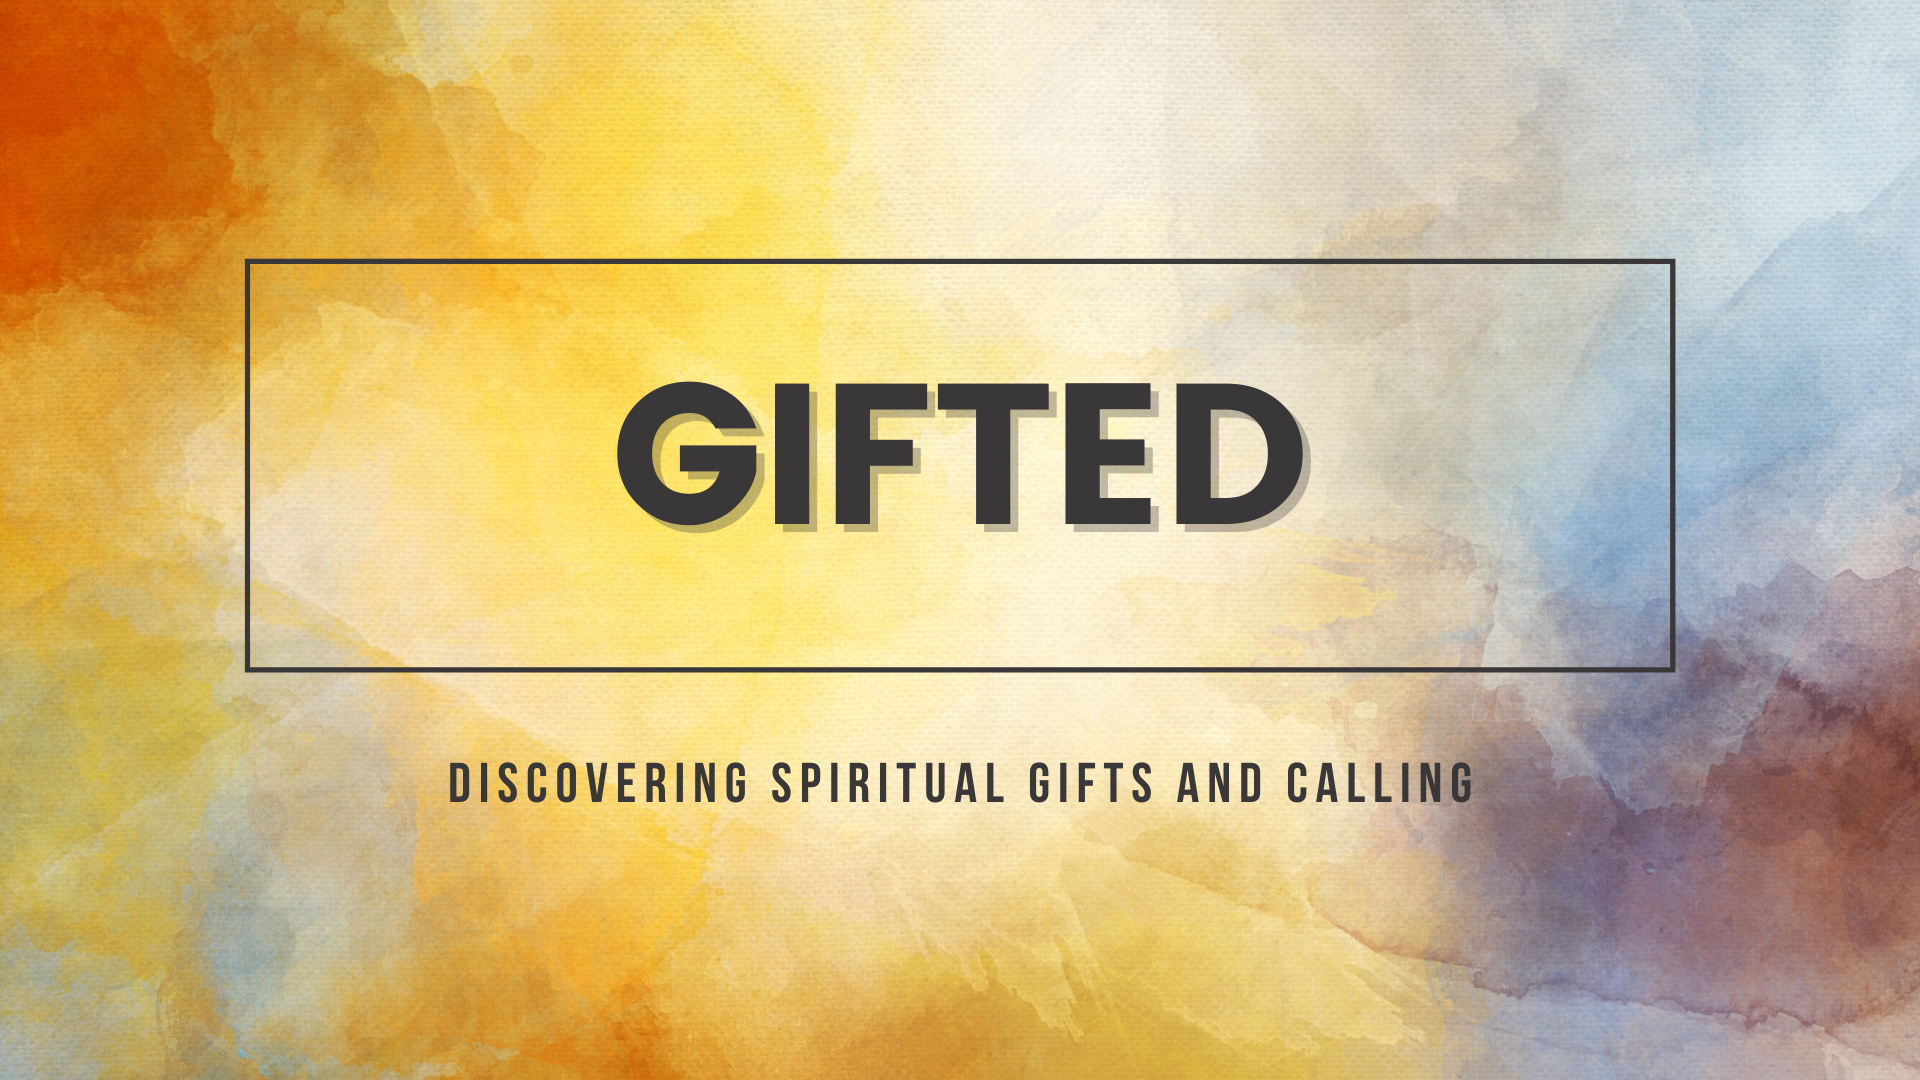 Gifted: Discovering Spiritual Gifts and Calling